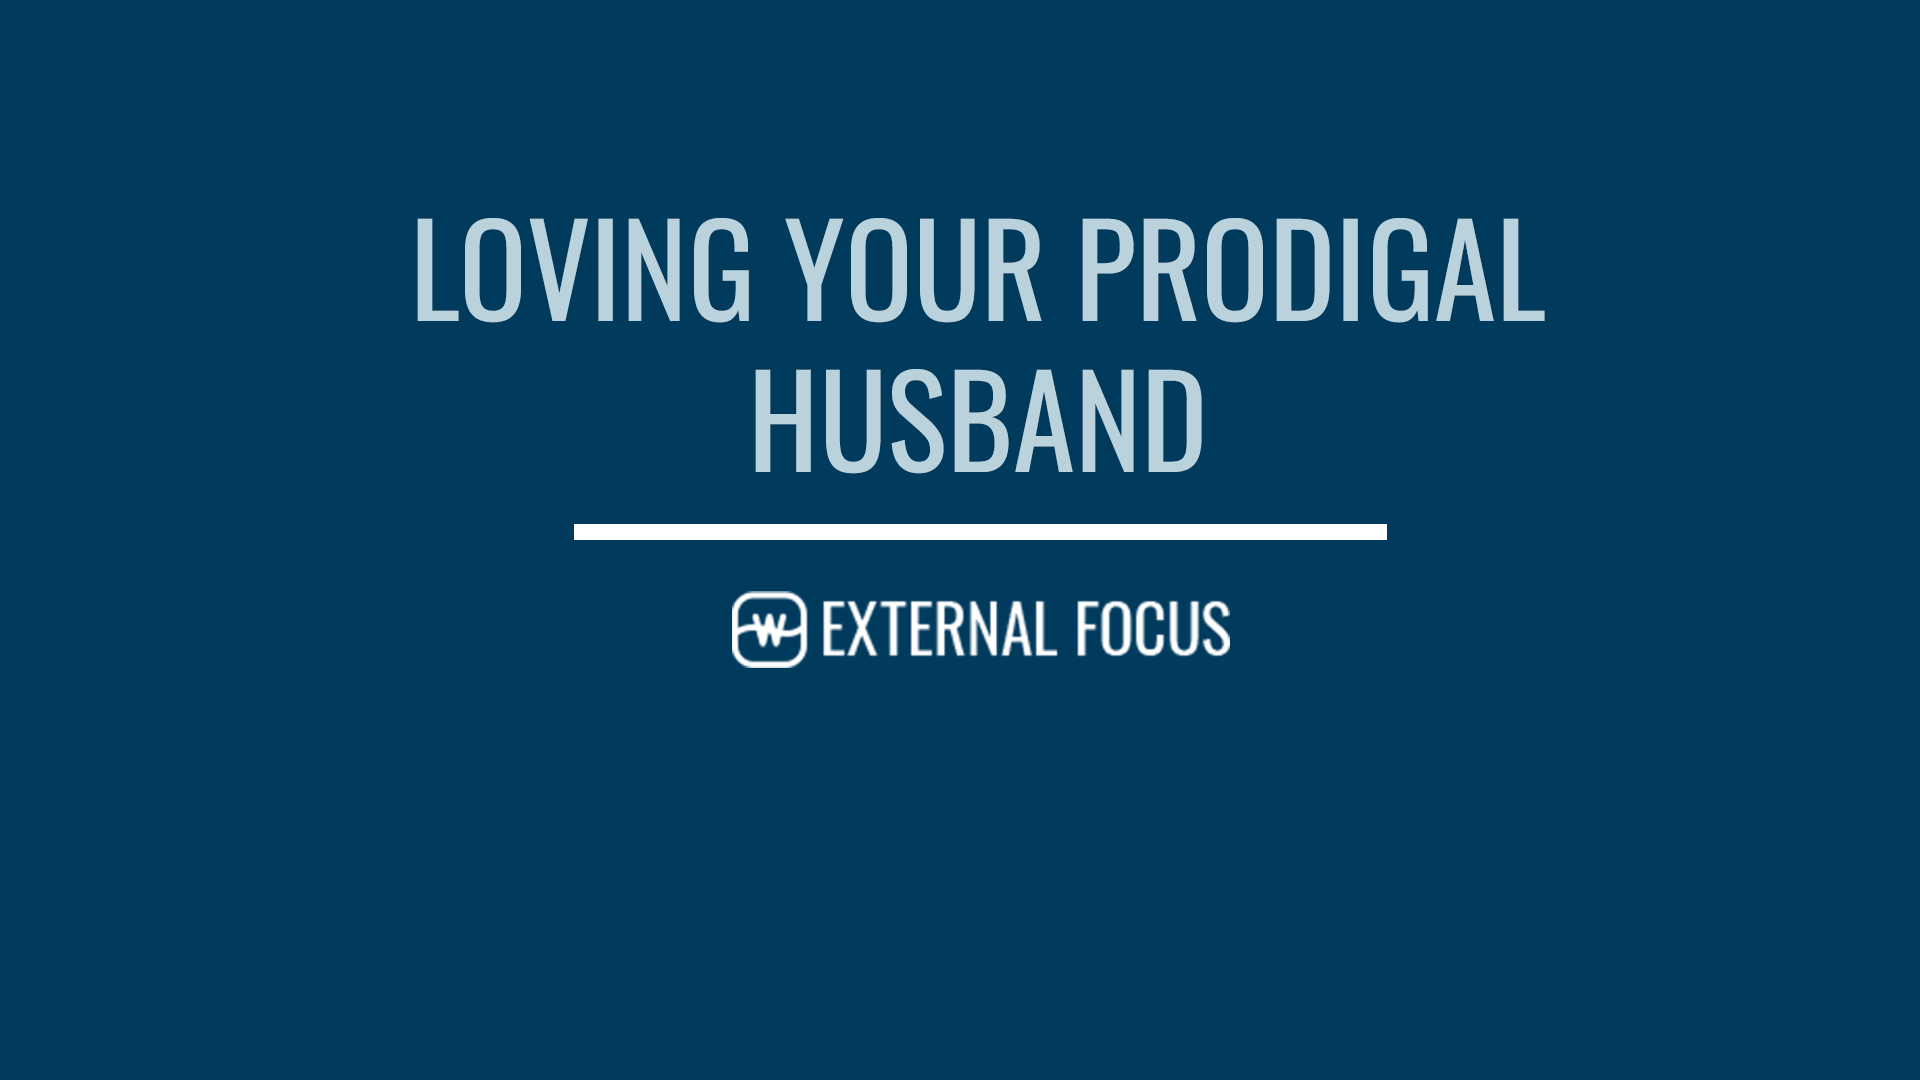 Loving Your Prodigal Husband